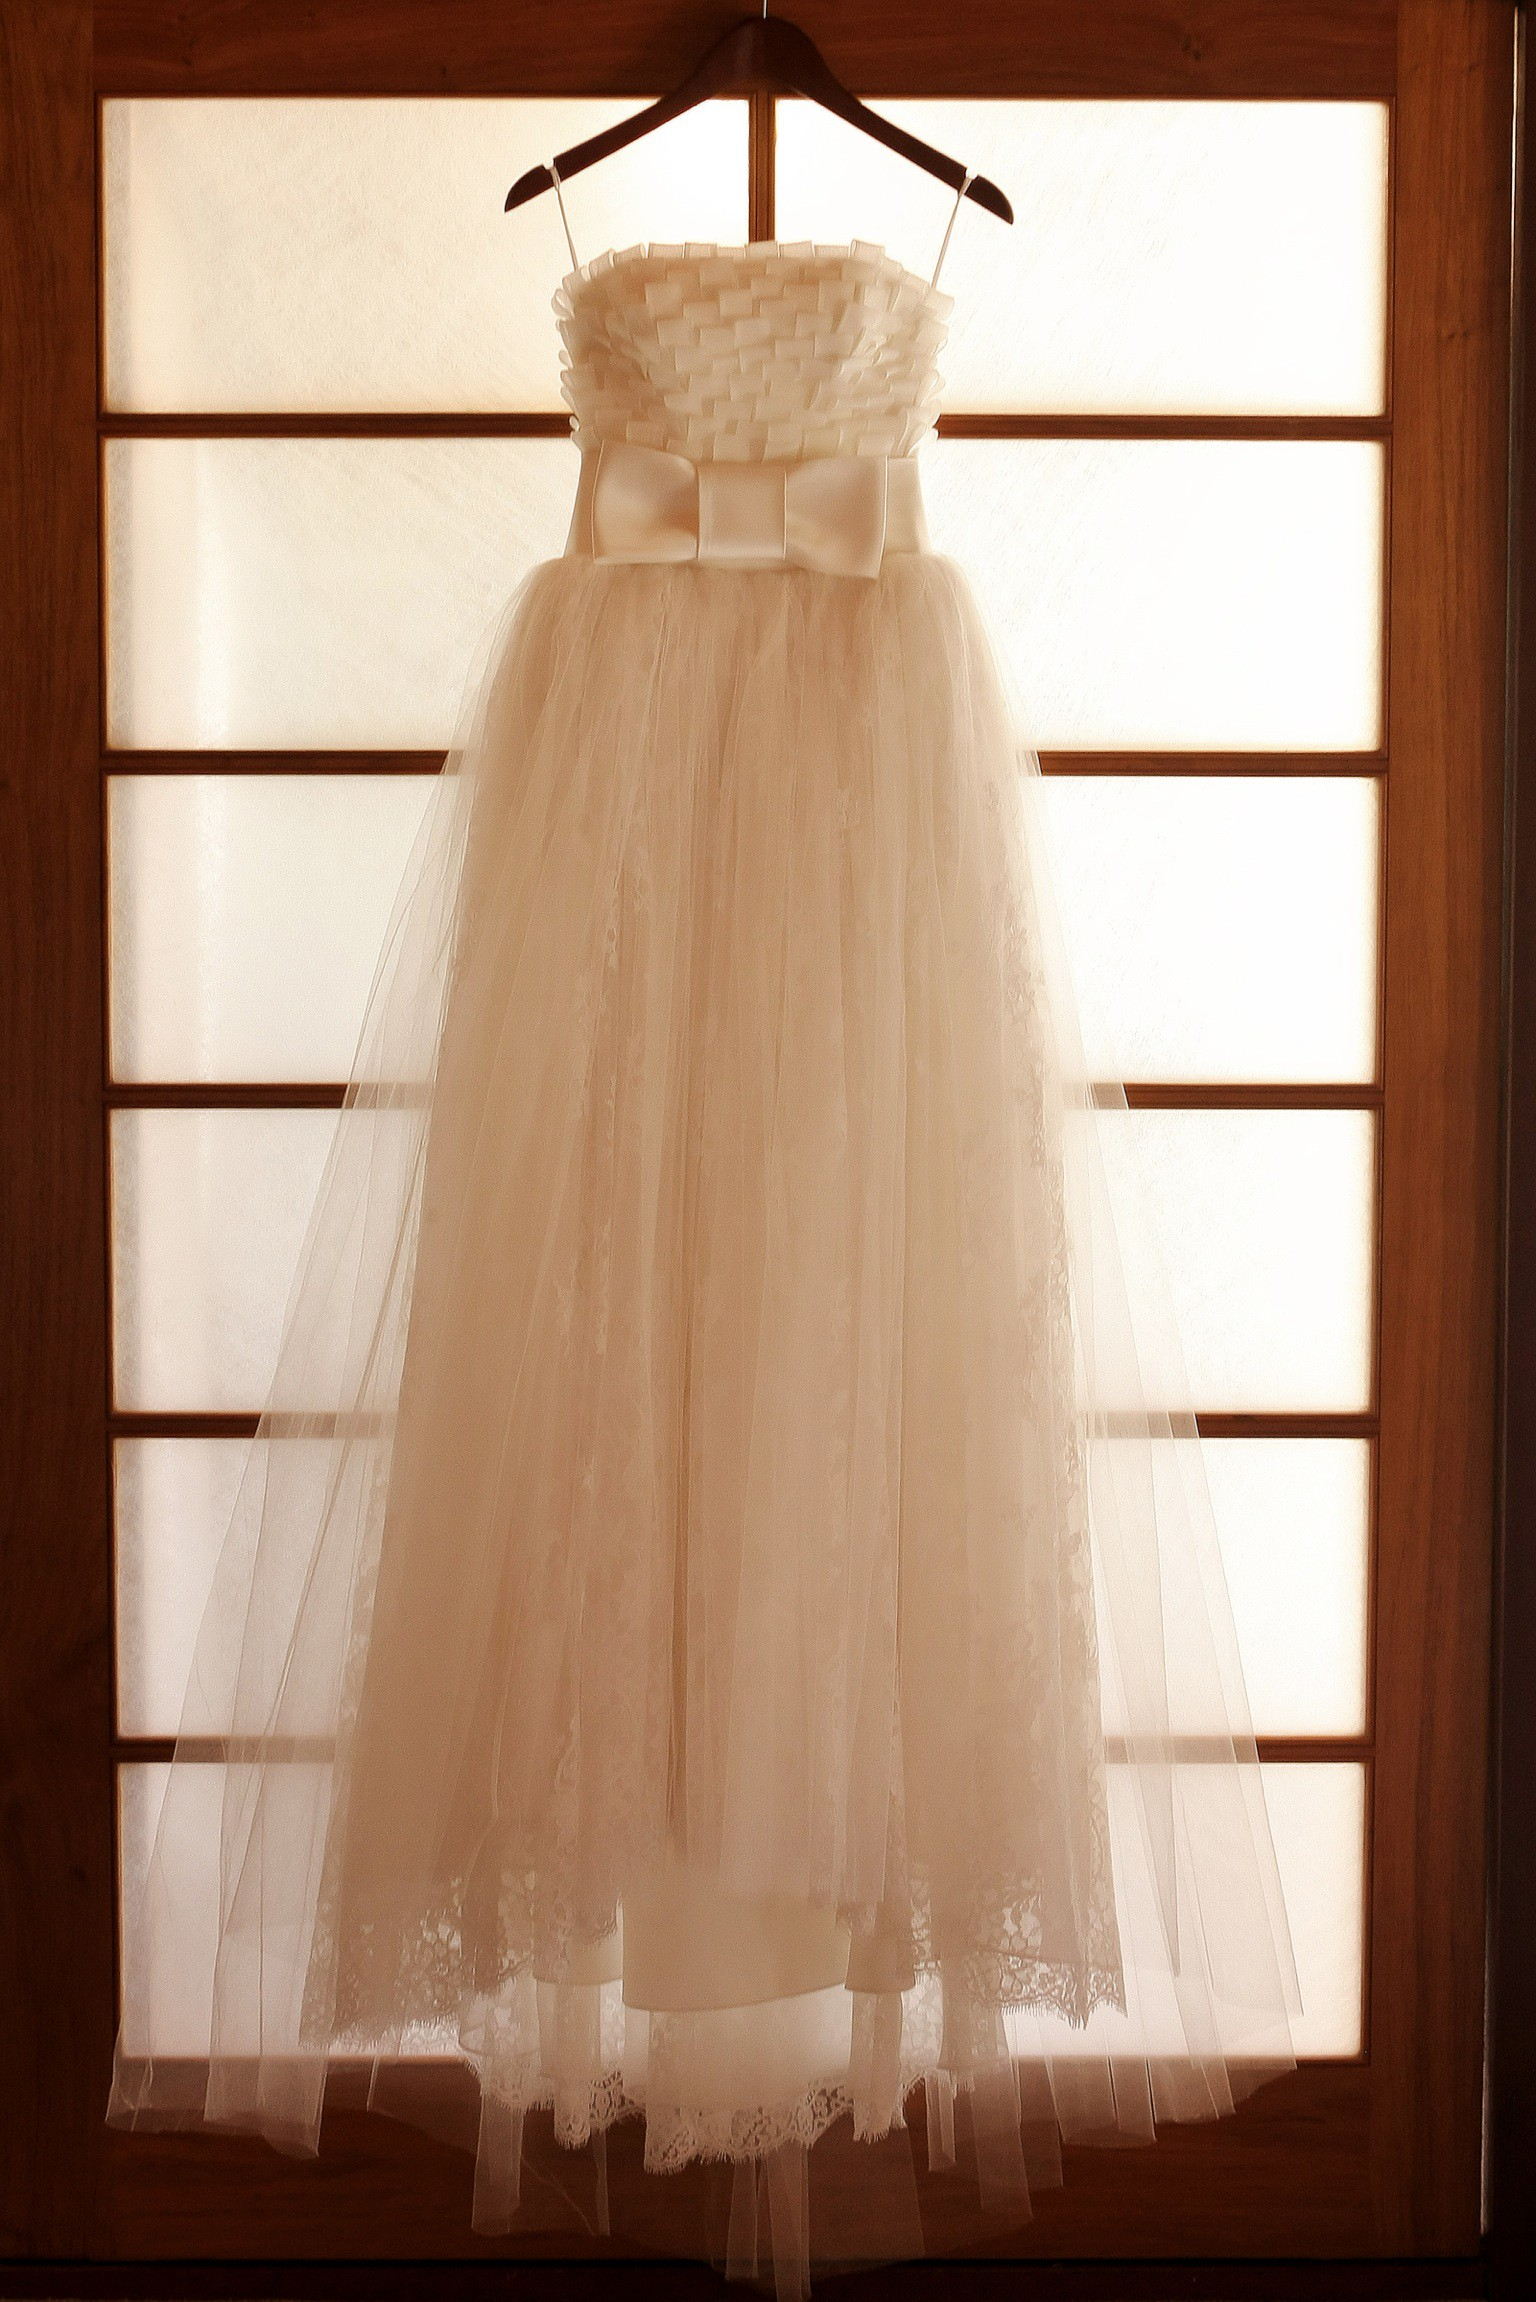 Darb bridal couture fabiene second hand wedding dress on for Second hand wedding dresses san diego